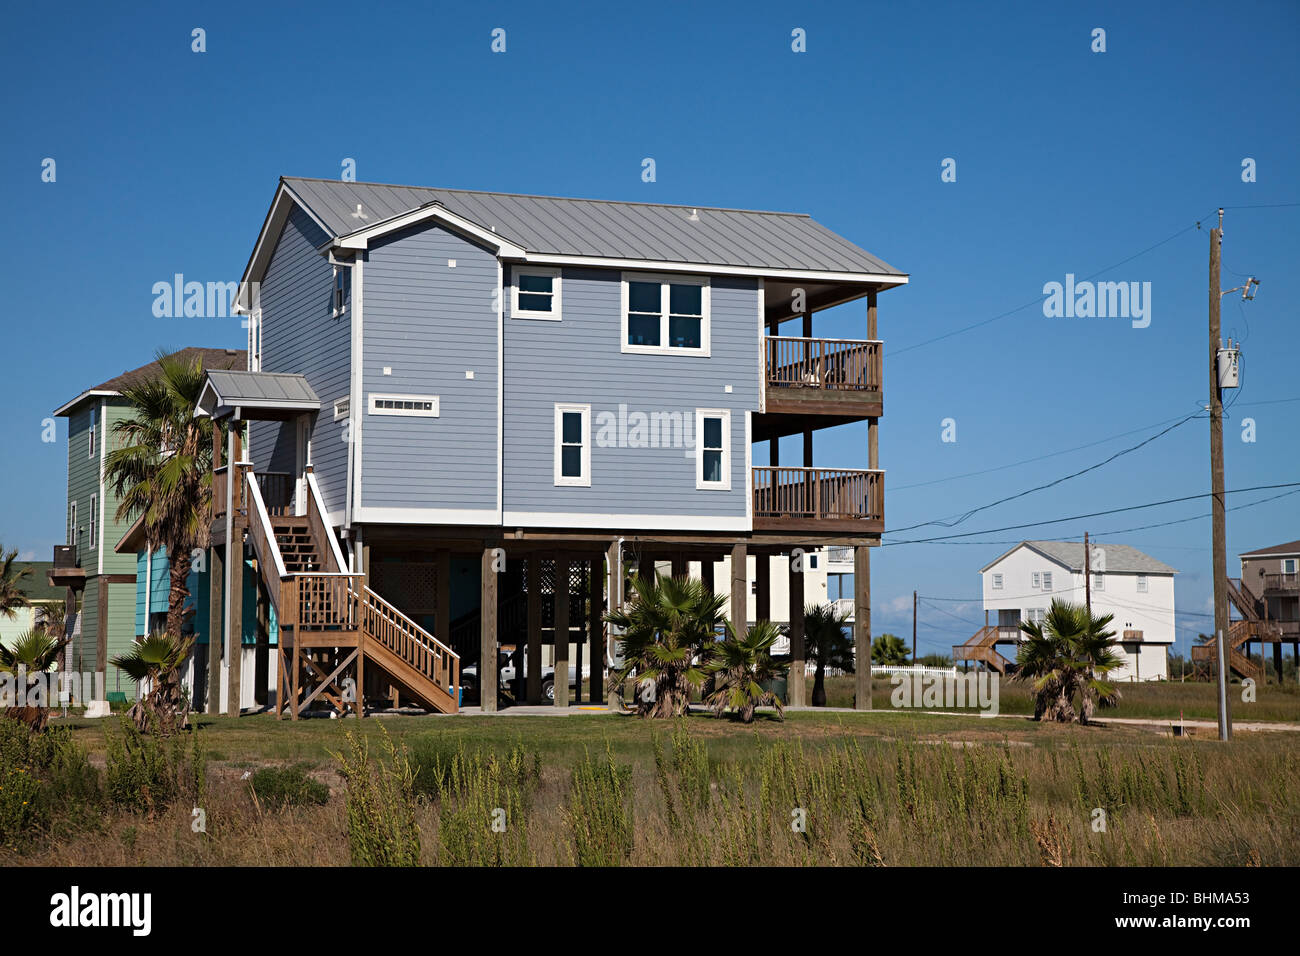 holzhaus auf stelzen am strand galveston texas usa stockfoto bild 28106543 alamy. Black Bedroom Furniture Sets. Home Design Ideas